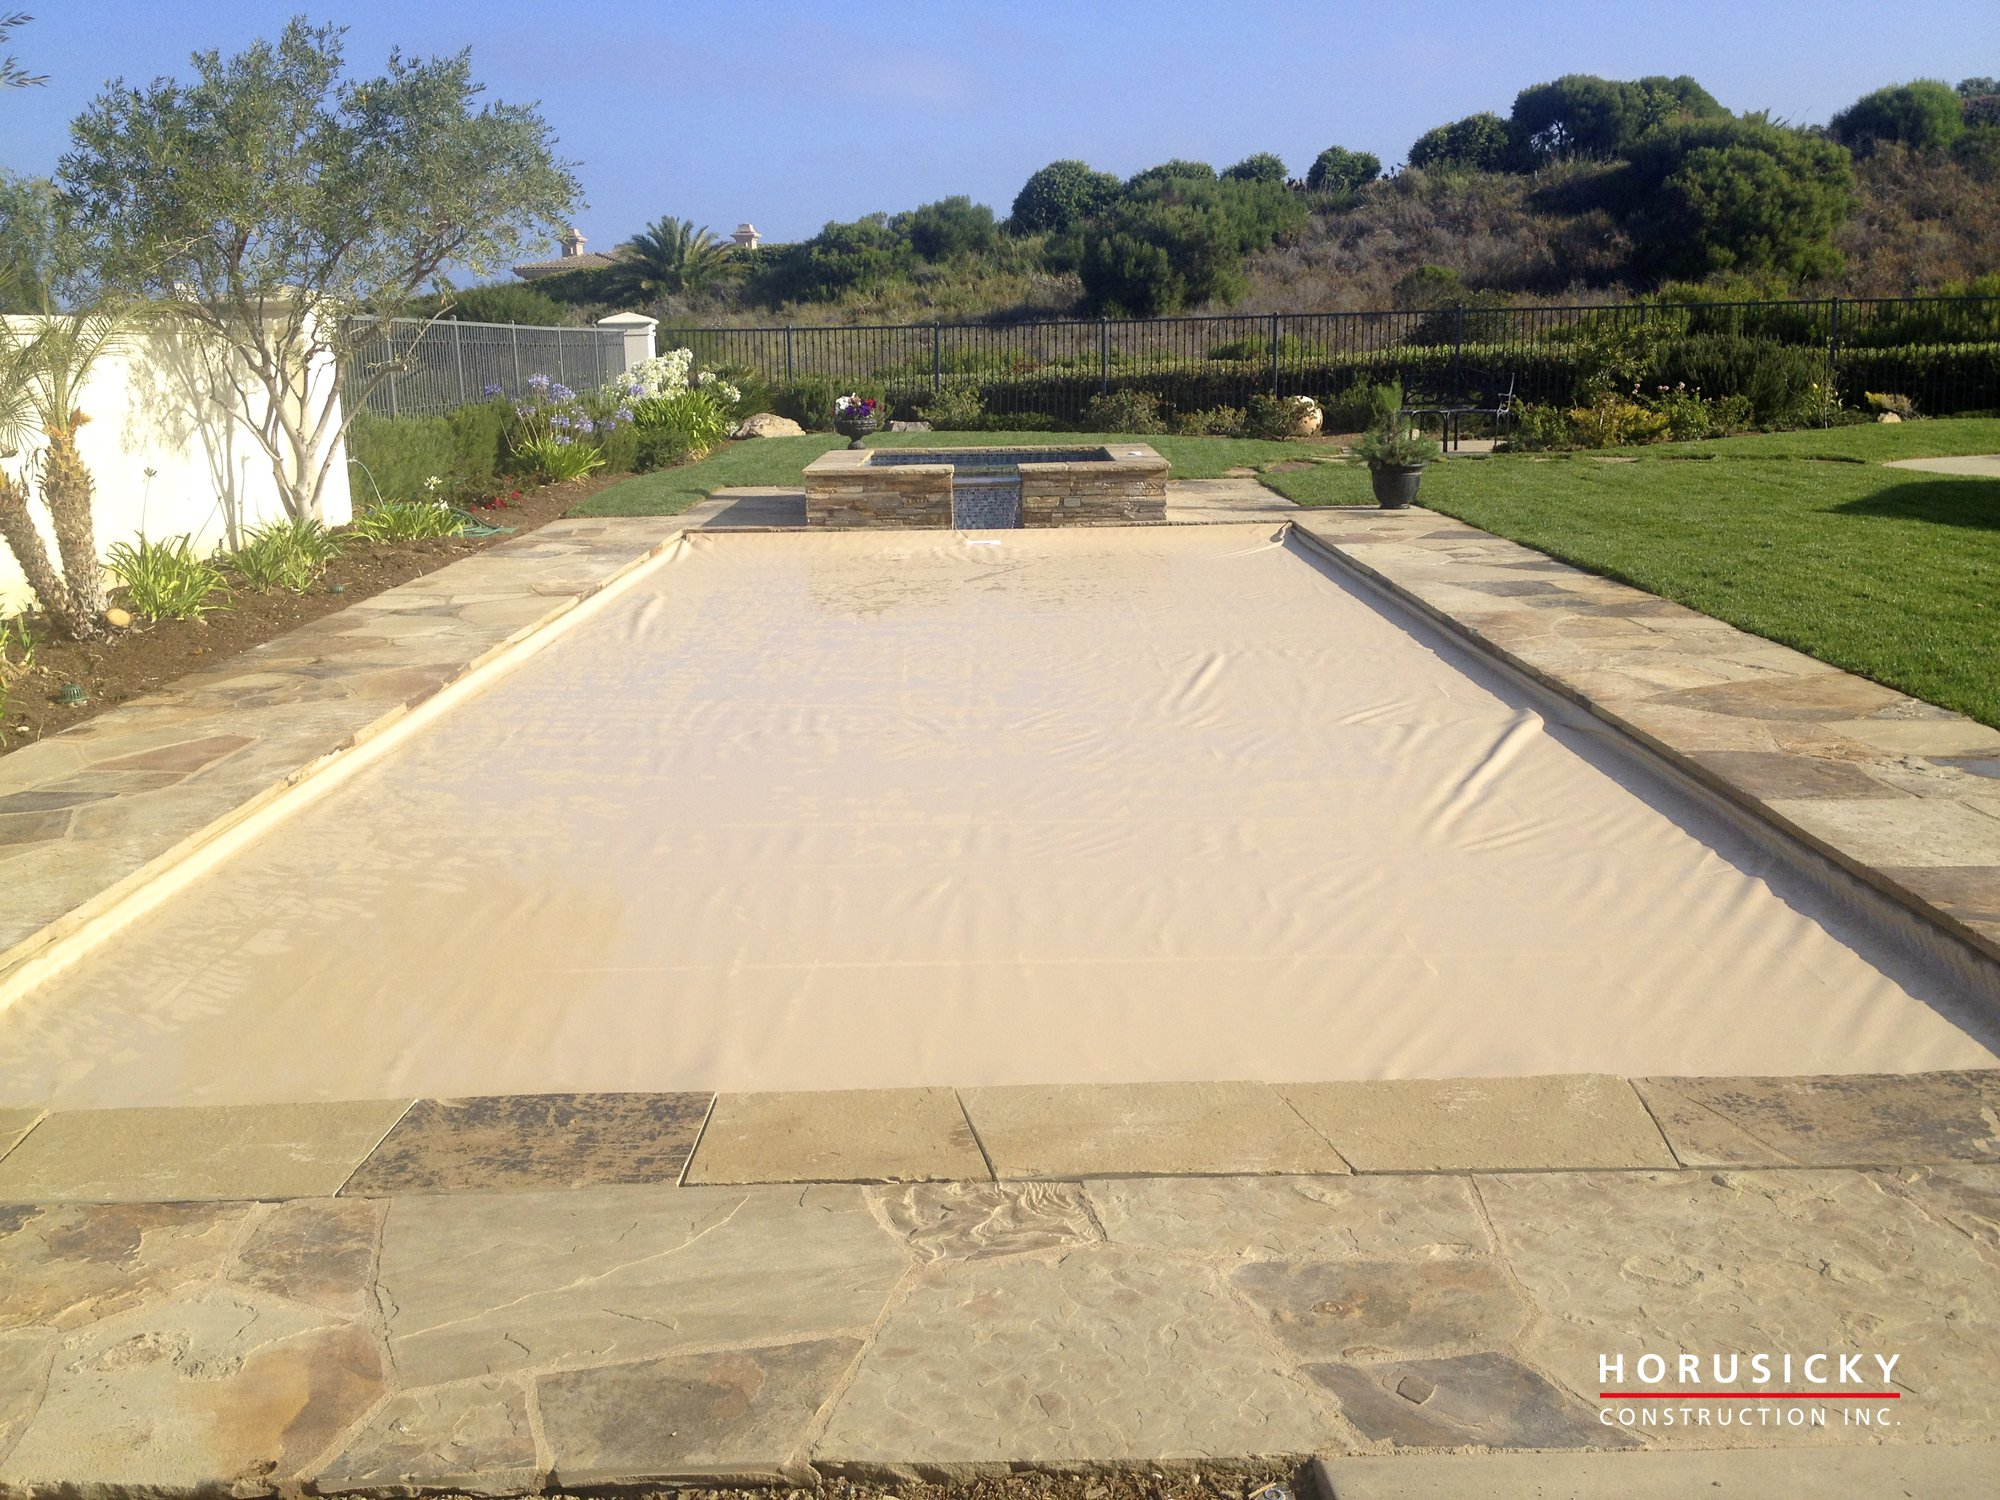 Pool Cover Construction : Pool cover by horusicky construction